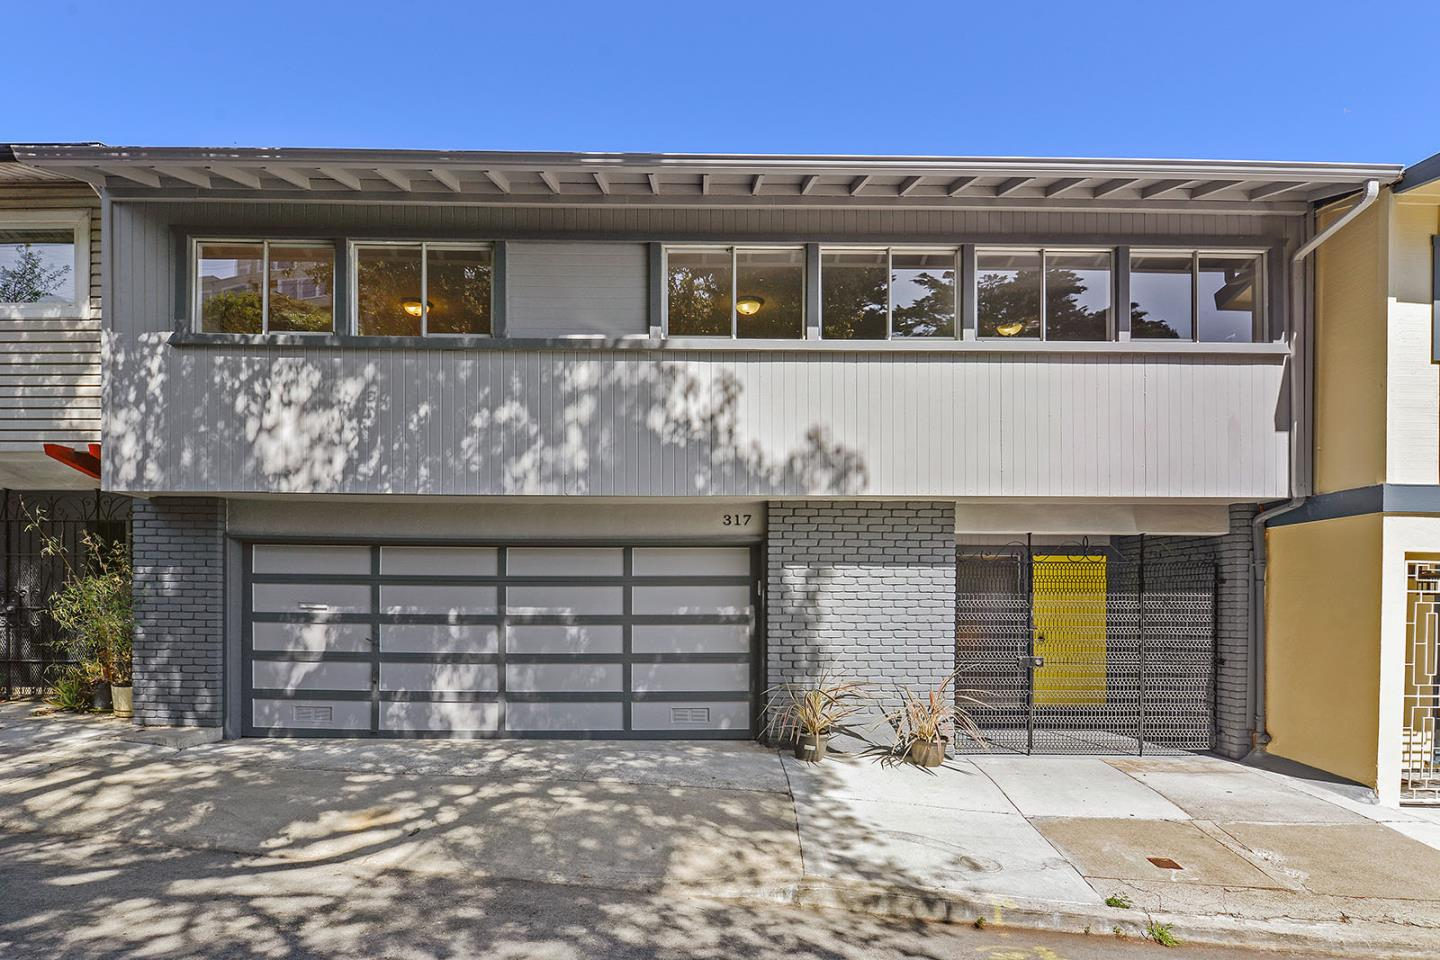 Image not available for 317 Marietta Drive, San Francisco CA, 94127